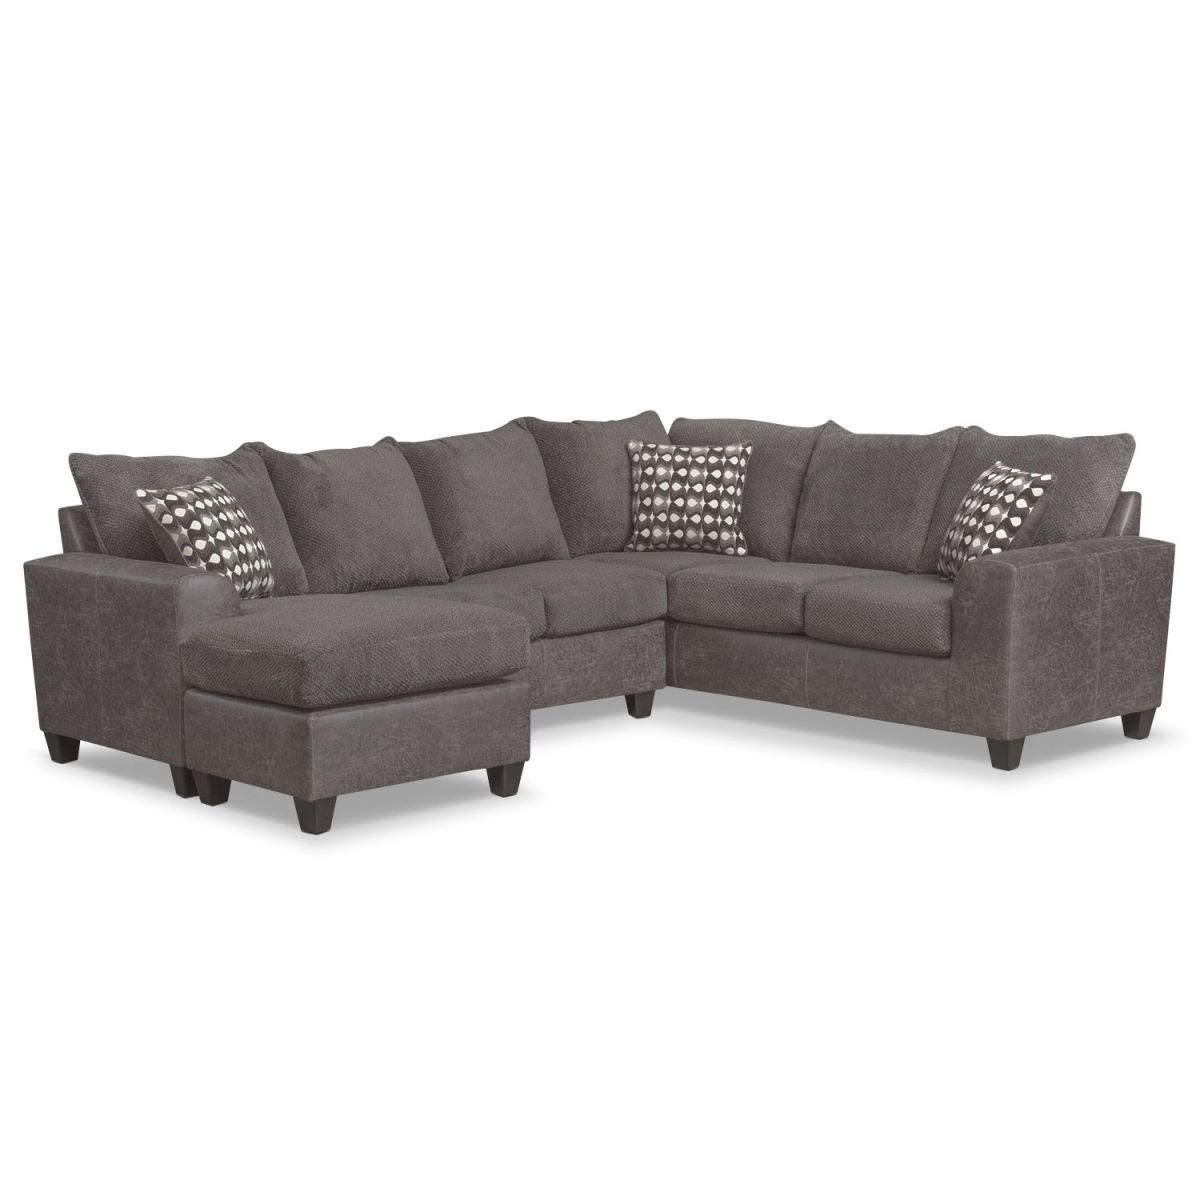 Brando 3-Piece Sectional With Modular Chaise inside 3 Piece Sectional Couch